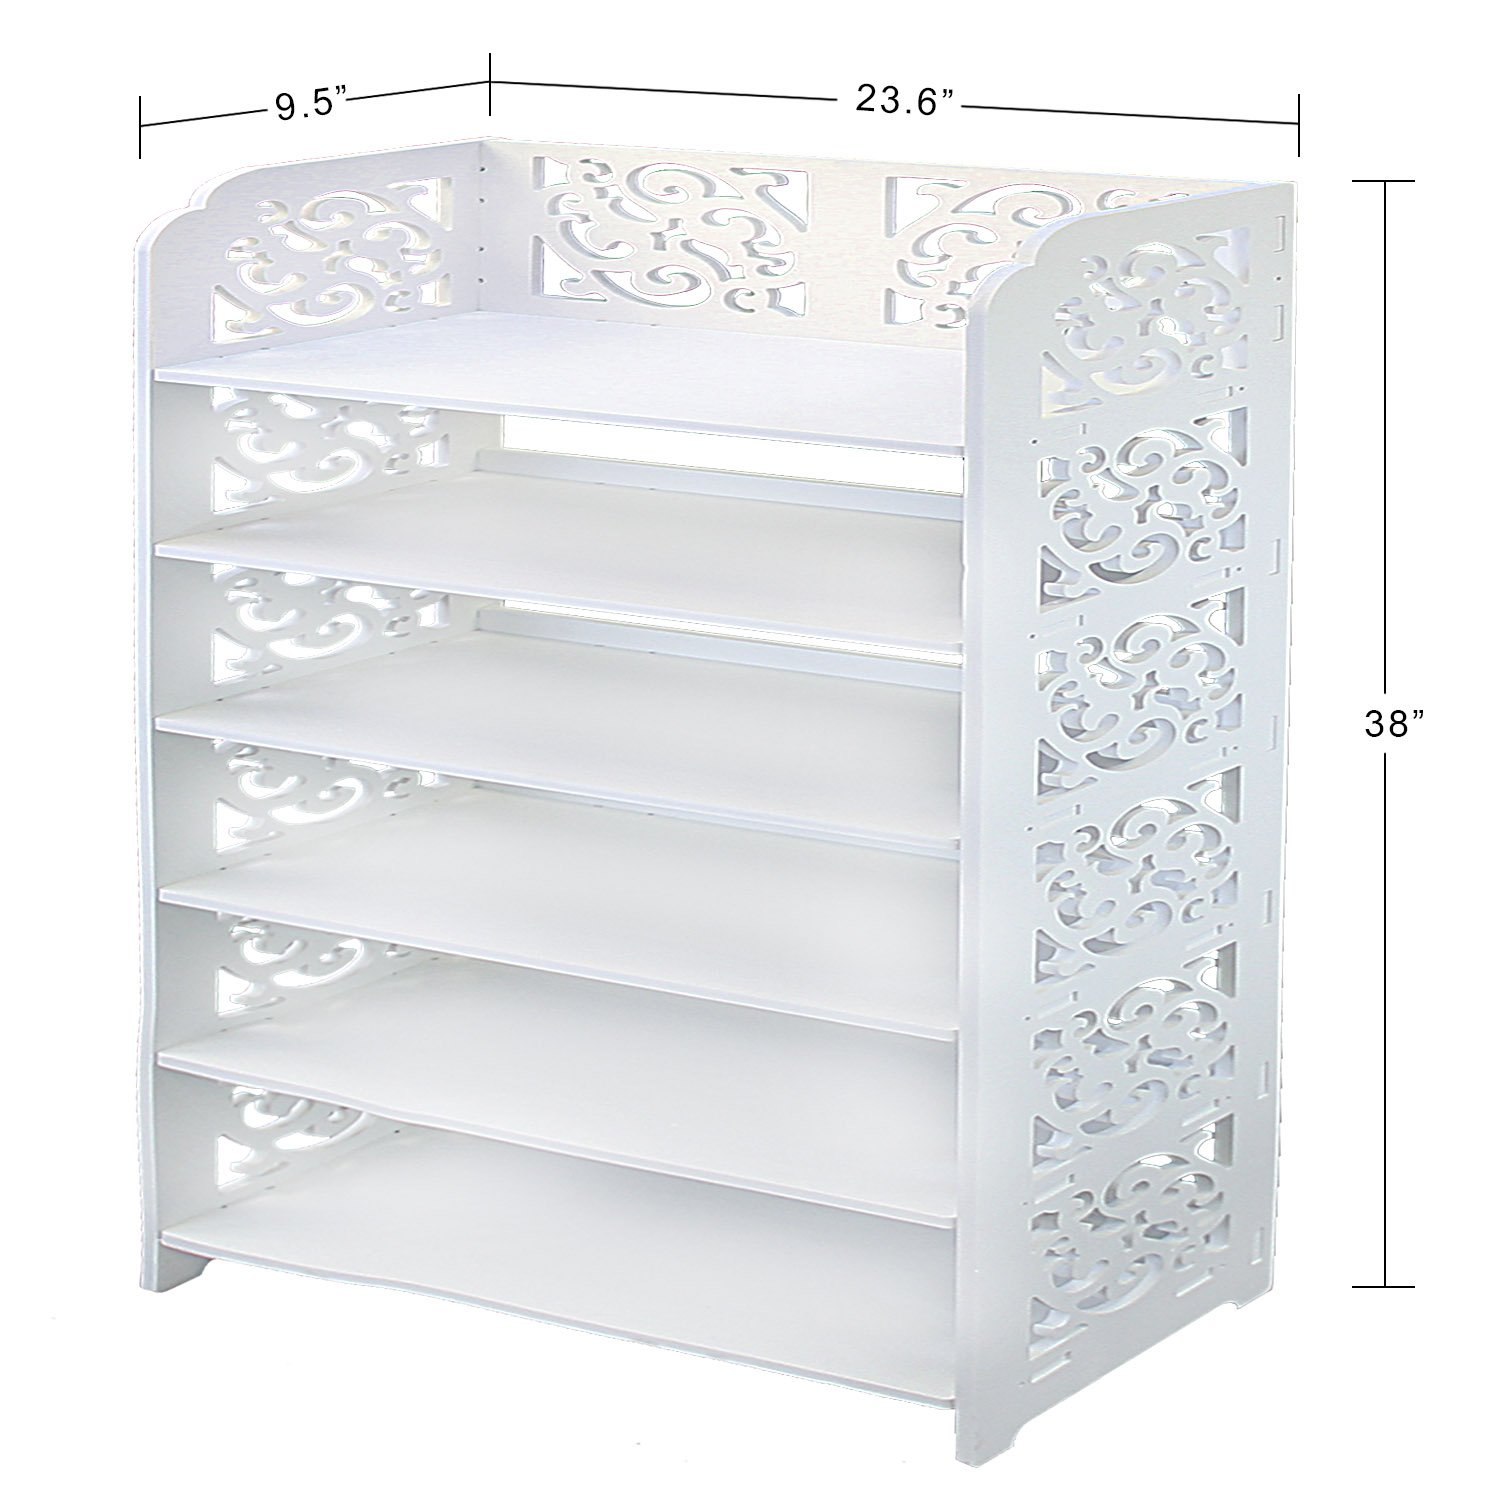 DL furniture - WPC Multipurpose Shoe Rack & Book Shelf L23.5'' x W9.5'' x H38'' 6 Tier Tall & Wide, Environmental Friendly Material | White… by DL furniture (Image #4)